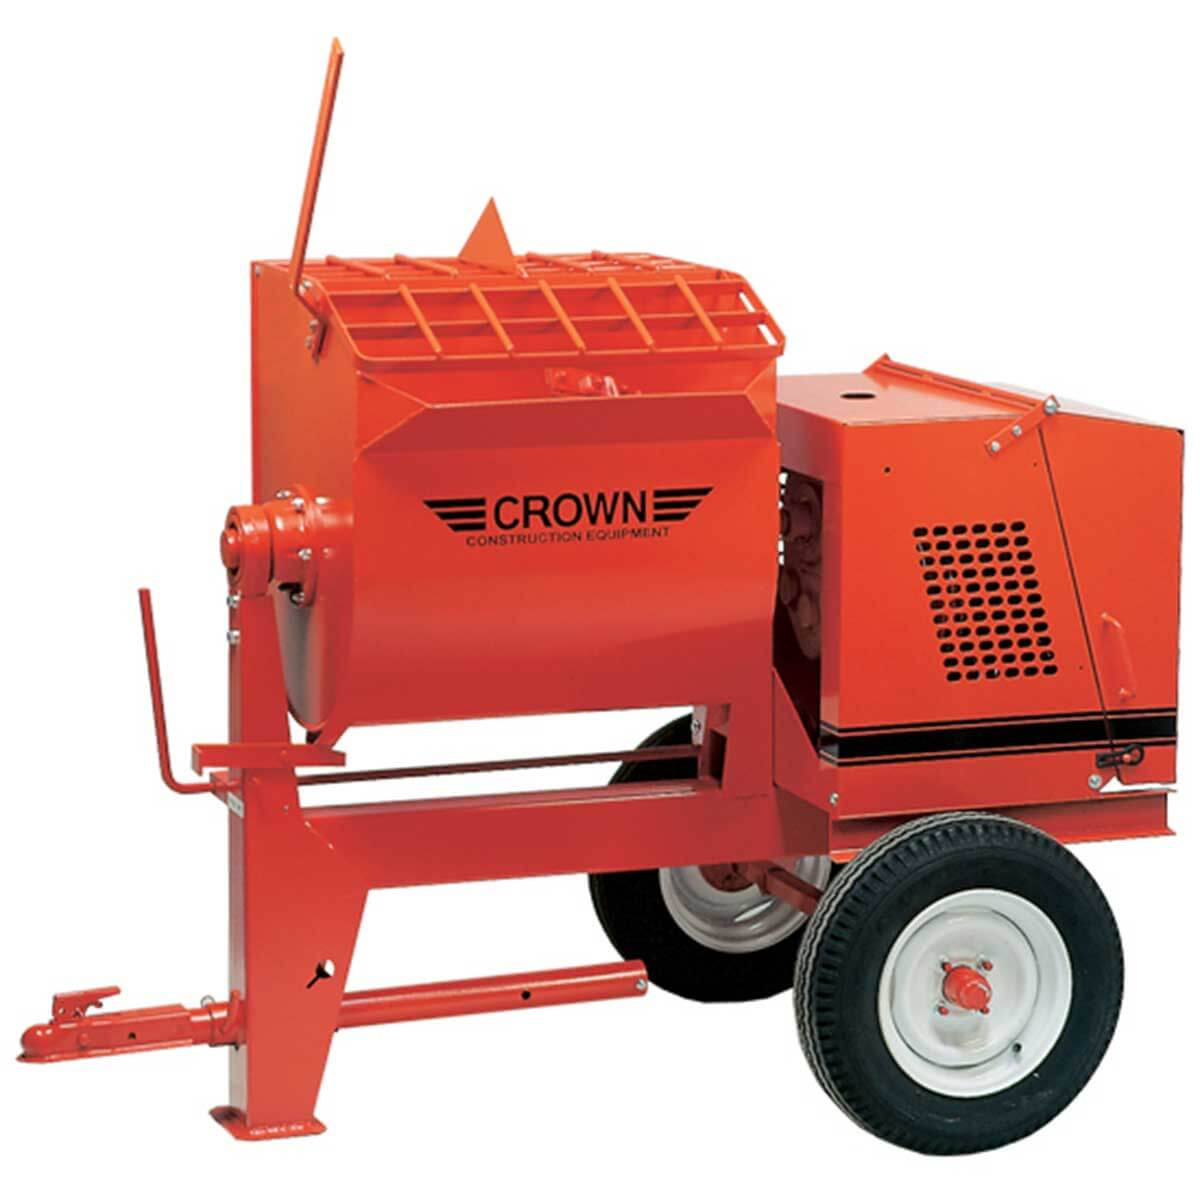 Crown 6SR Towable Mortar Mixer